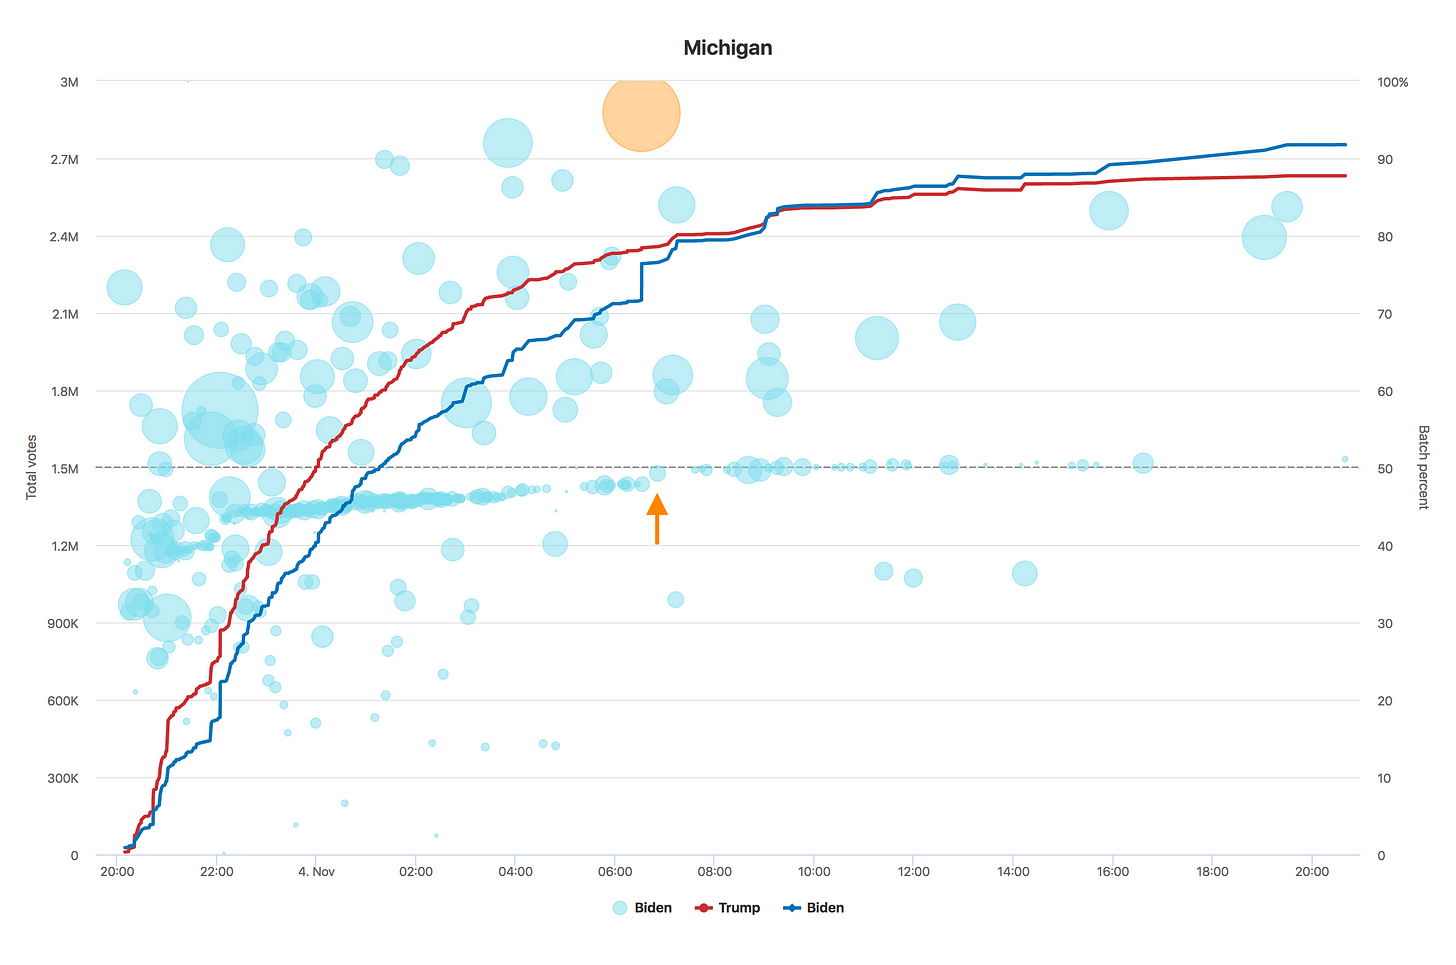 Chart of Michigan voting data over time